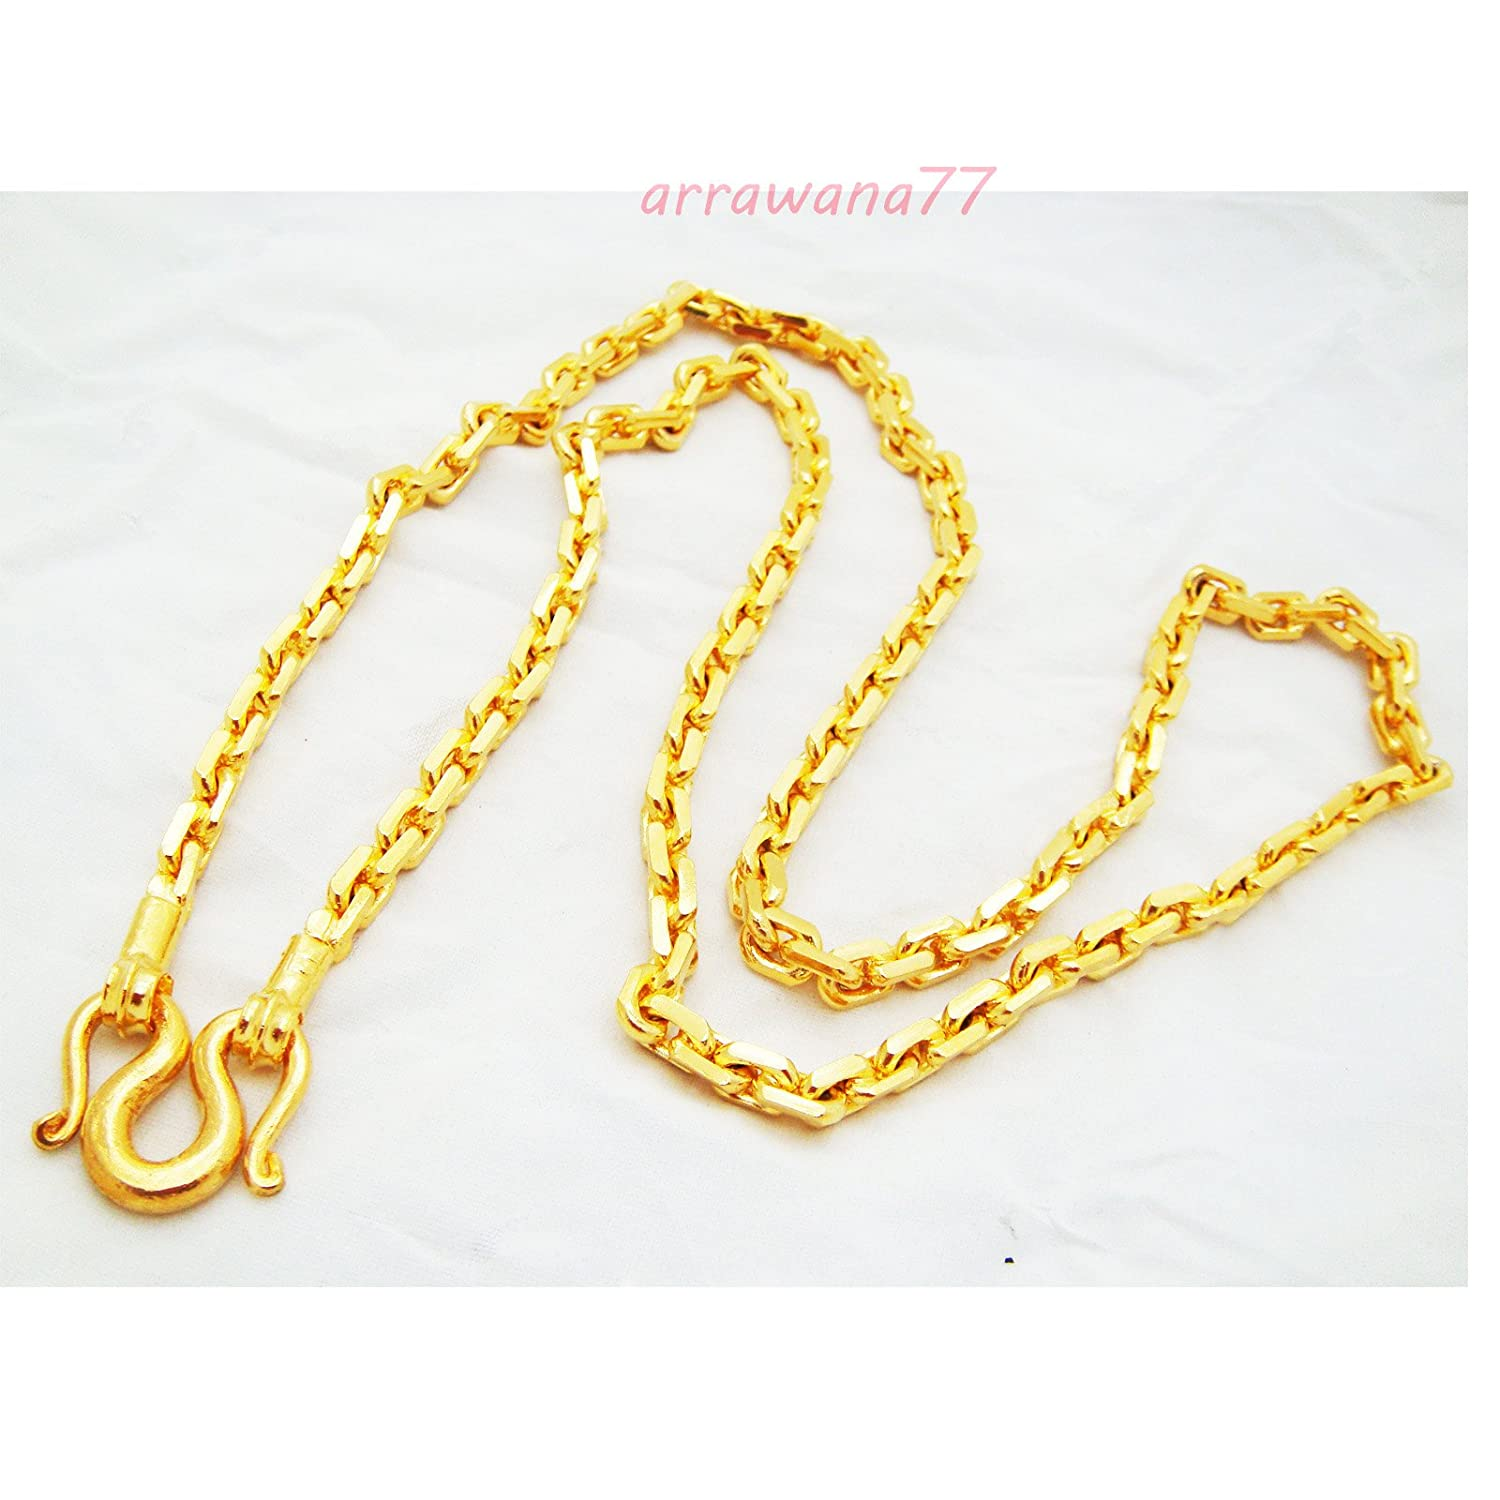 chain chains clear earrings s inches plated with gold products collections rope necklace